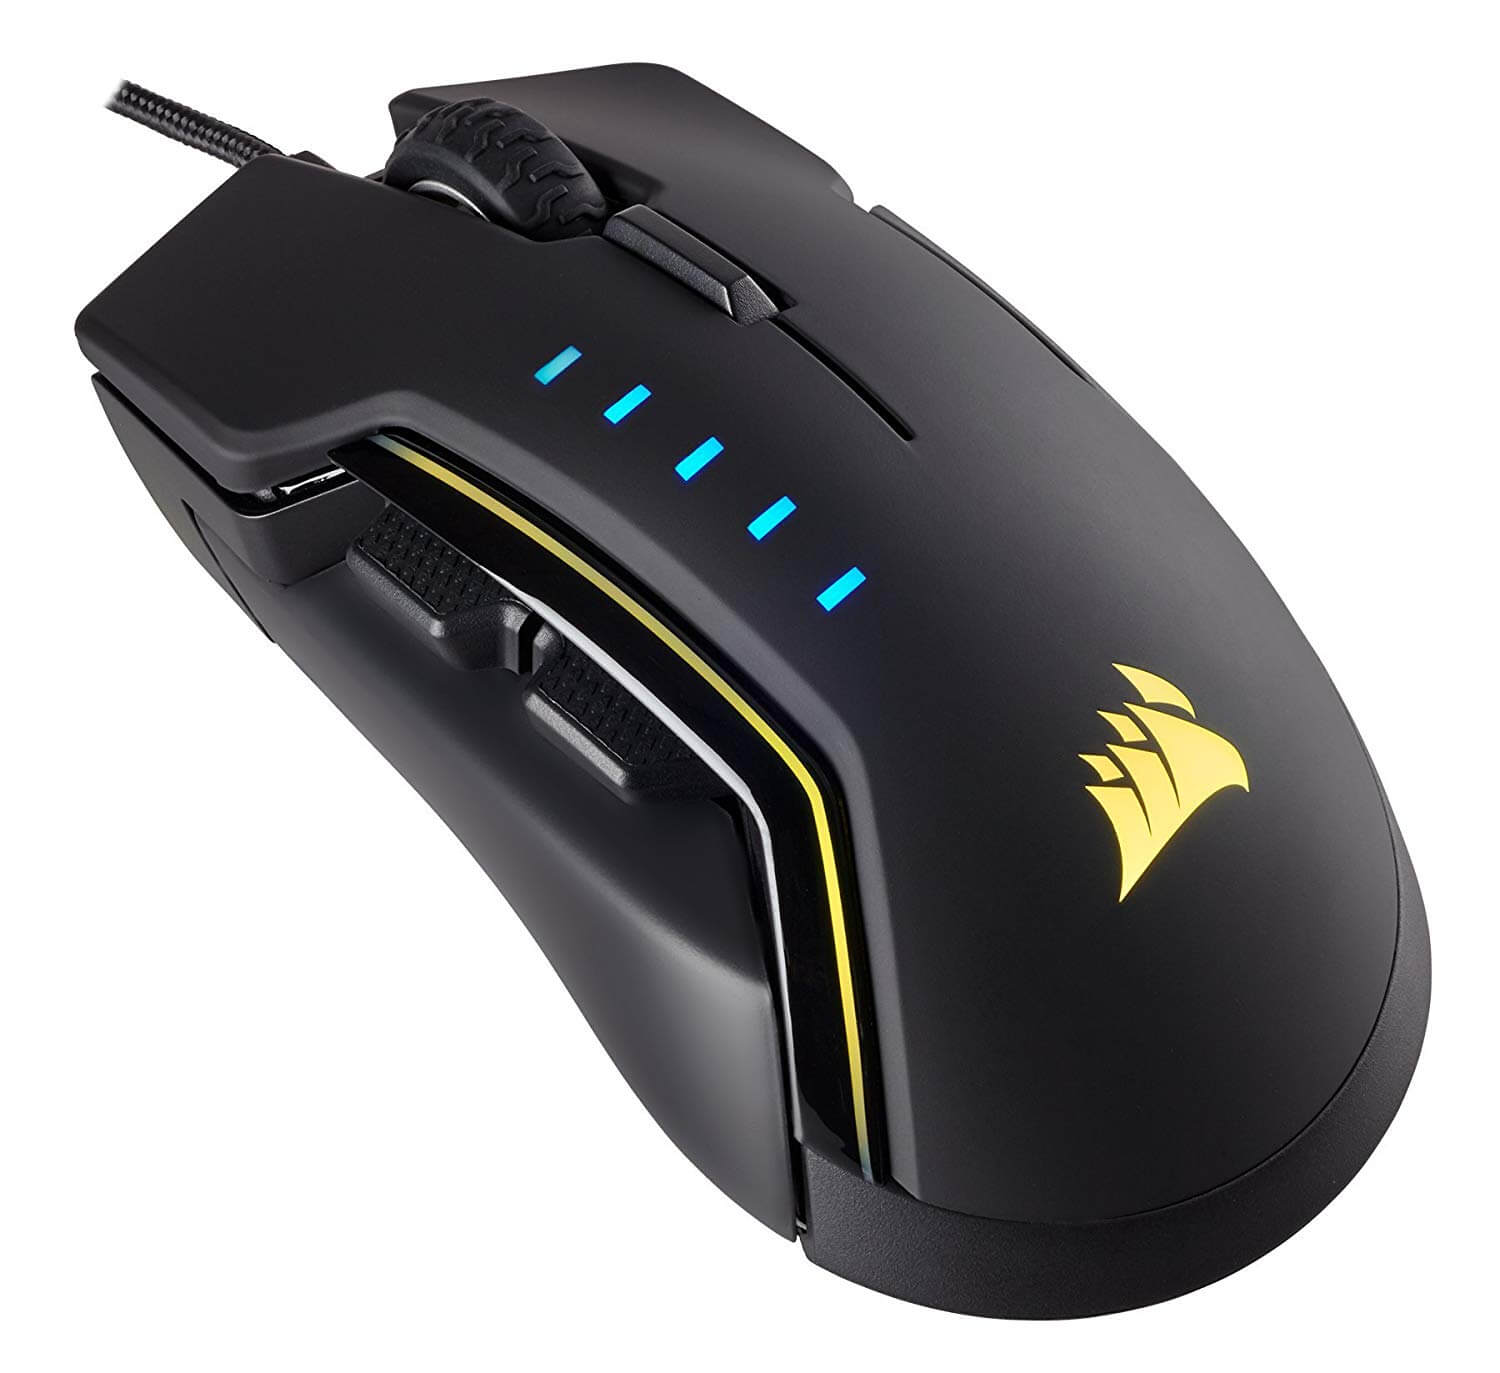 10 Best Gaming Mice (Mouse) - Buyer's Guide (UPDATED)